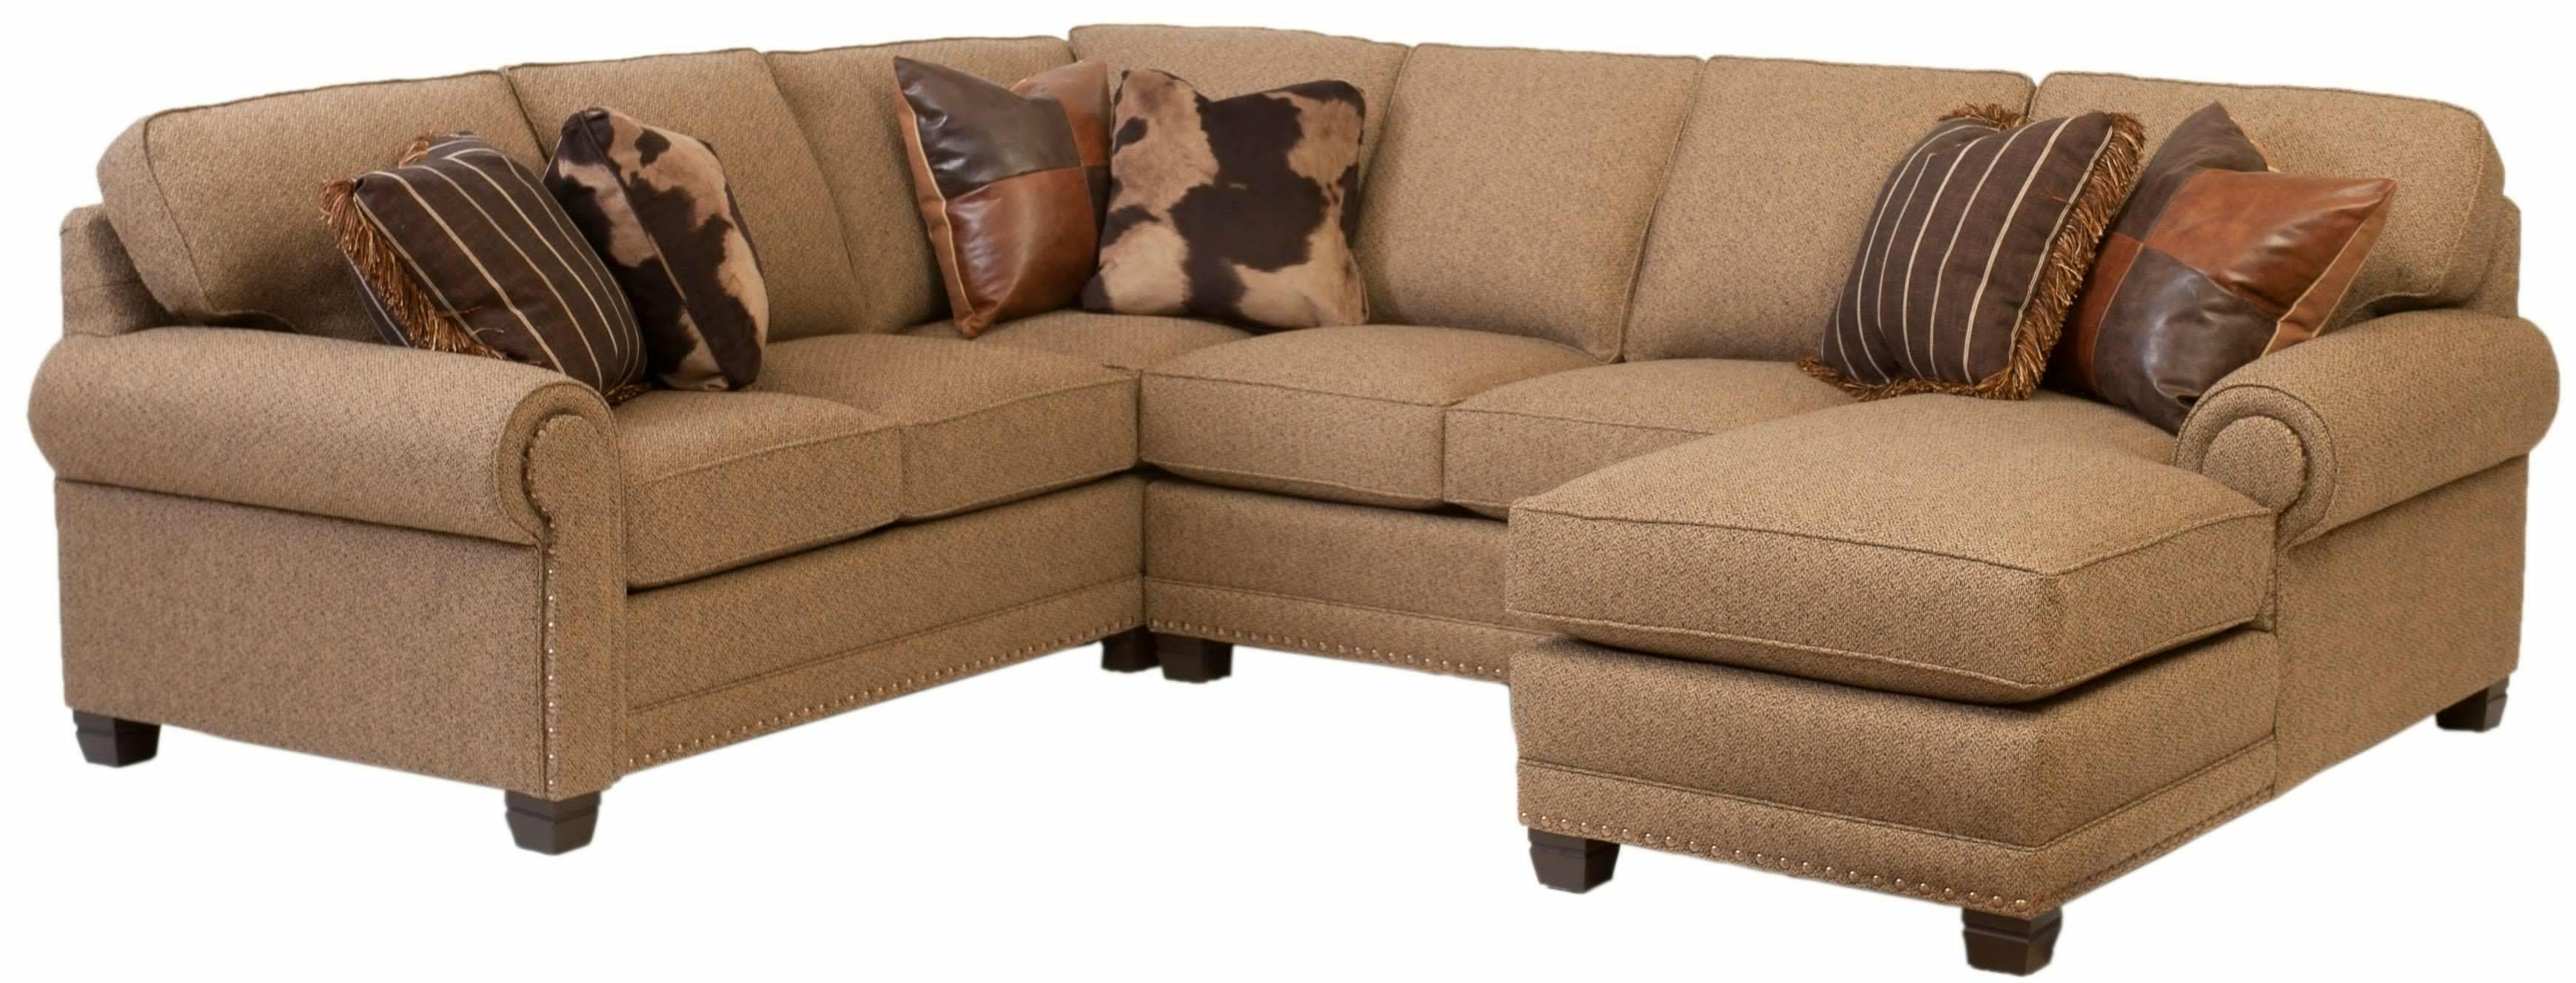 Small Couches With Chaise Lounge Intended For Fashionable Sectional Sofa Design: Small Sectional Sofa With Chaise Lounge (View 10 of 15)